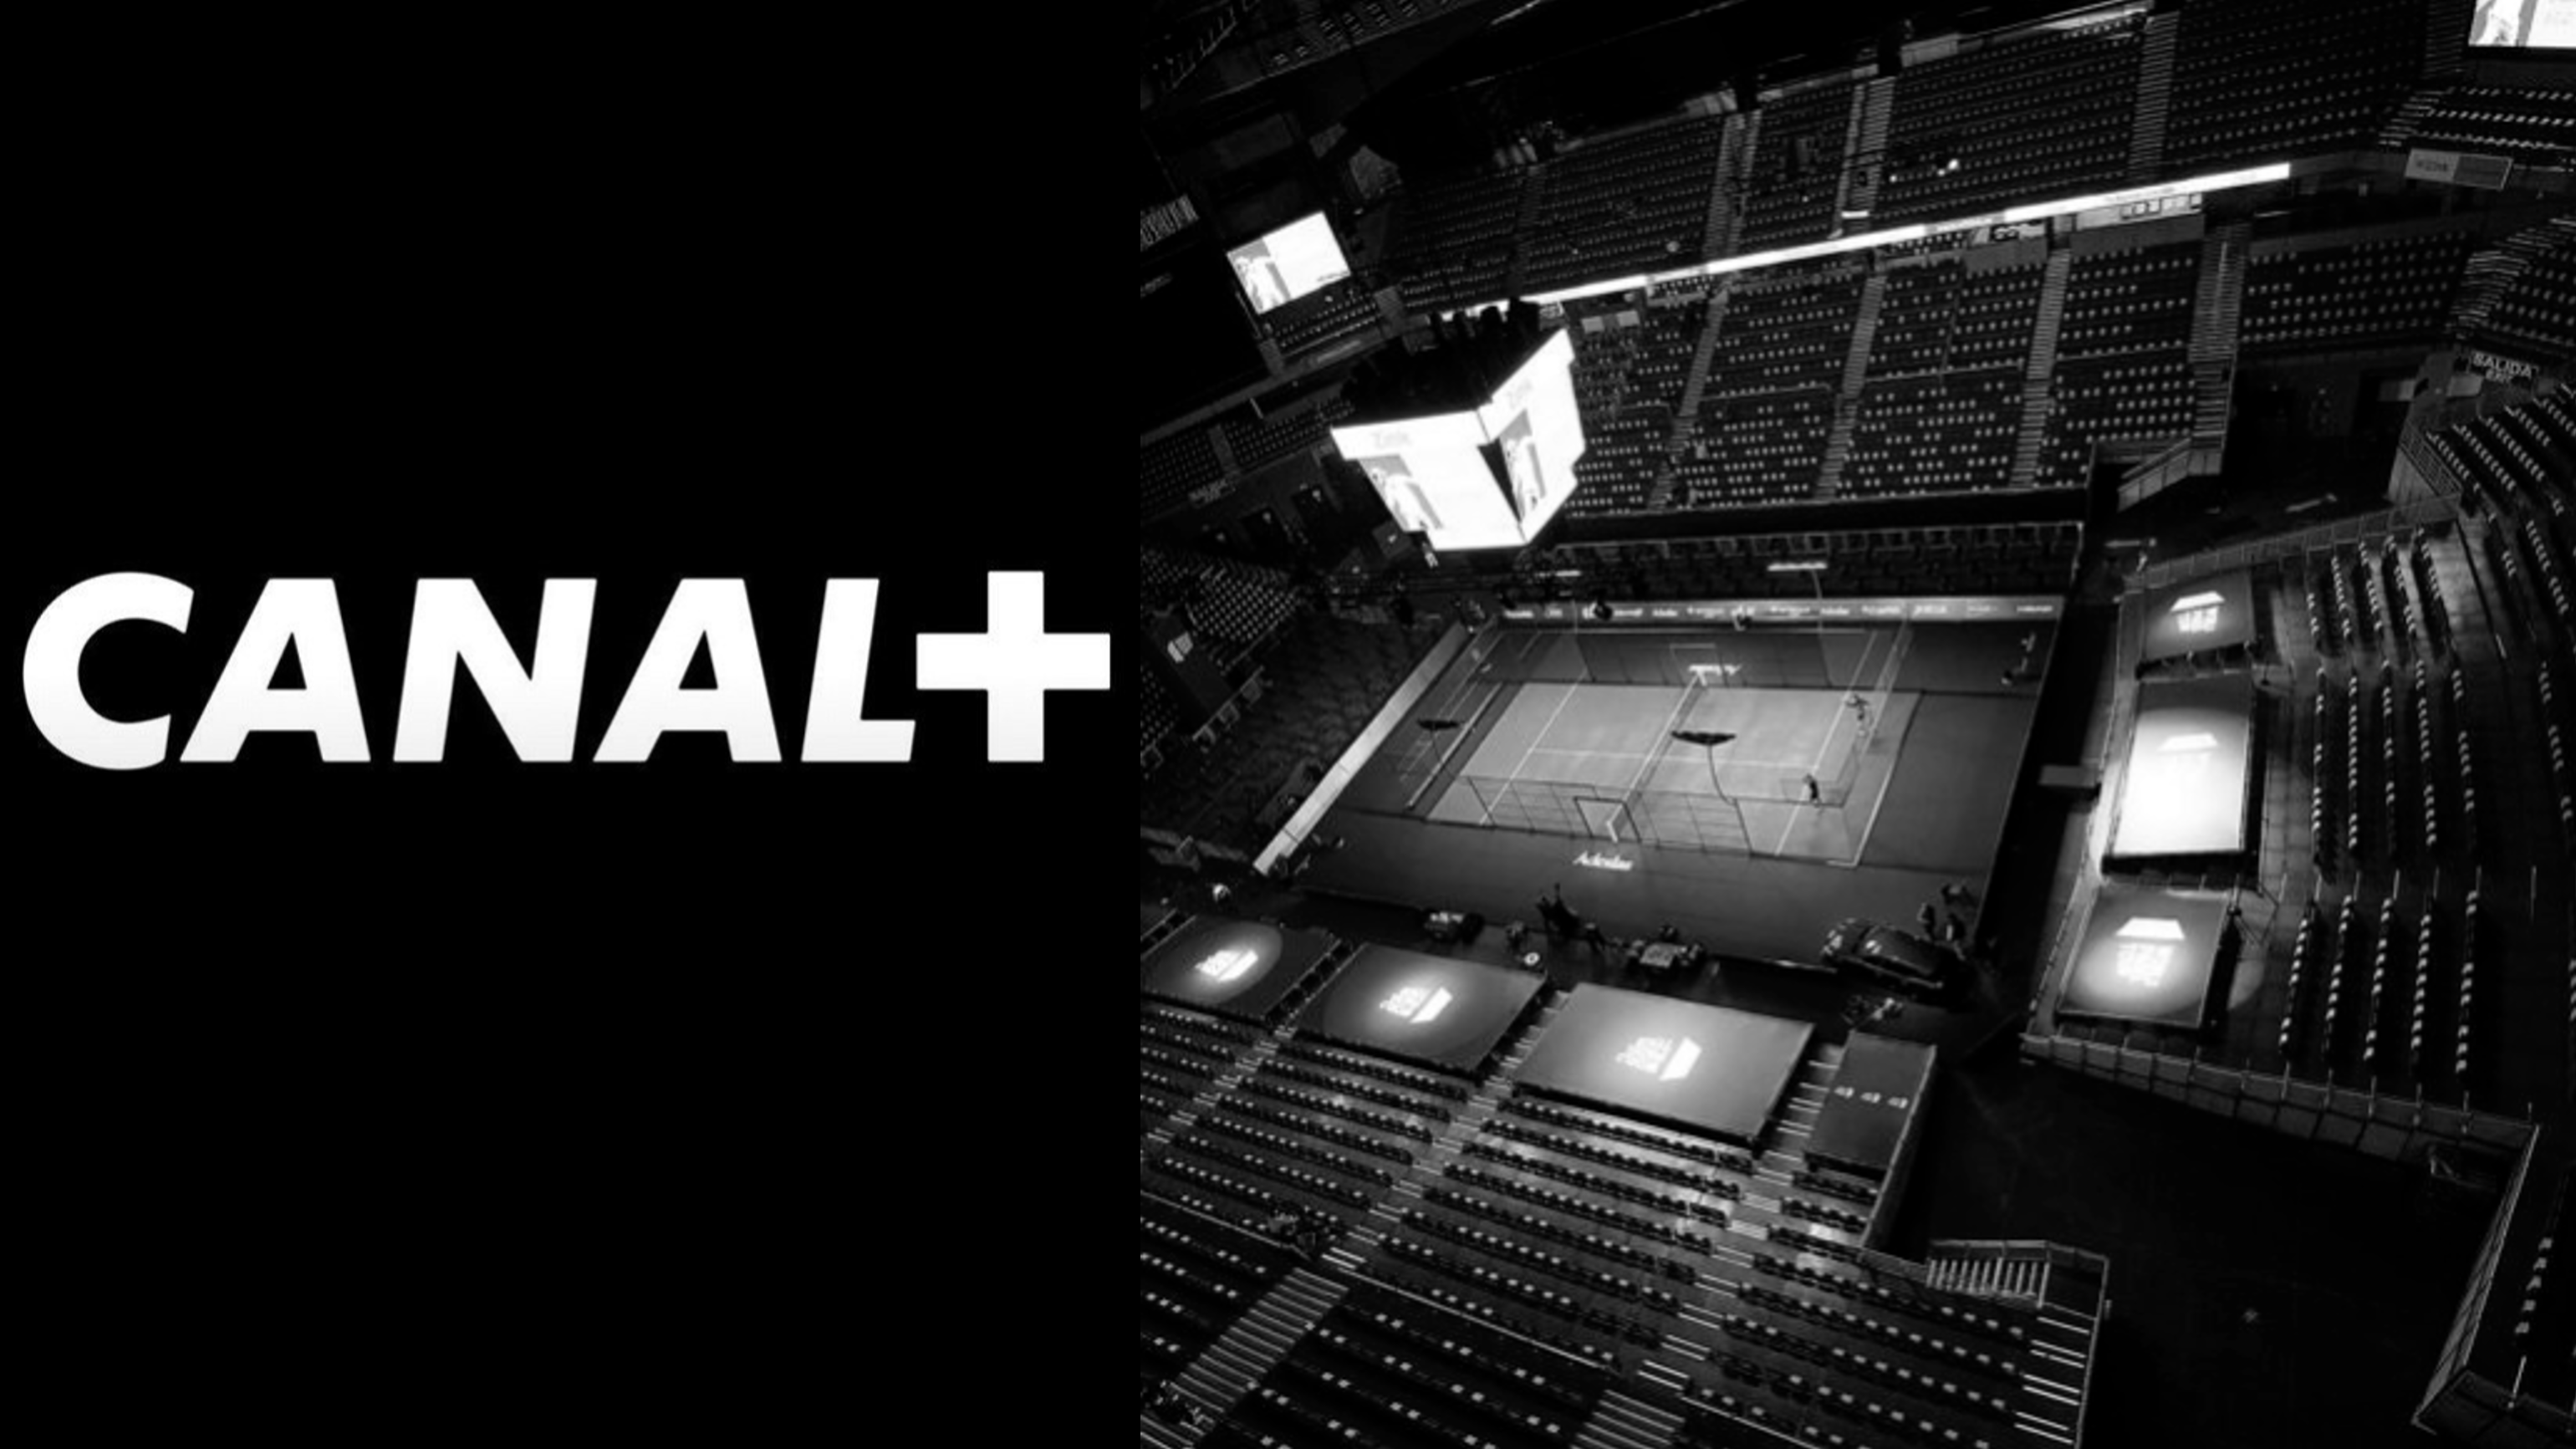 WPT canal + diffusion padel